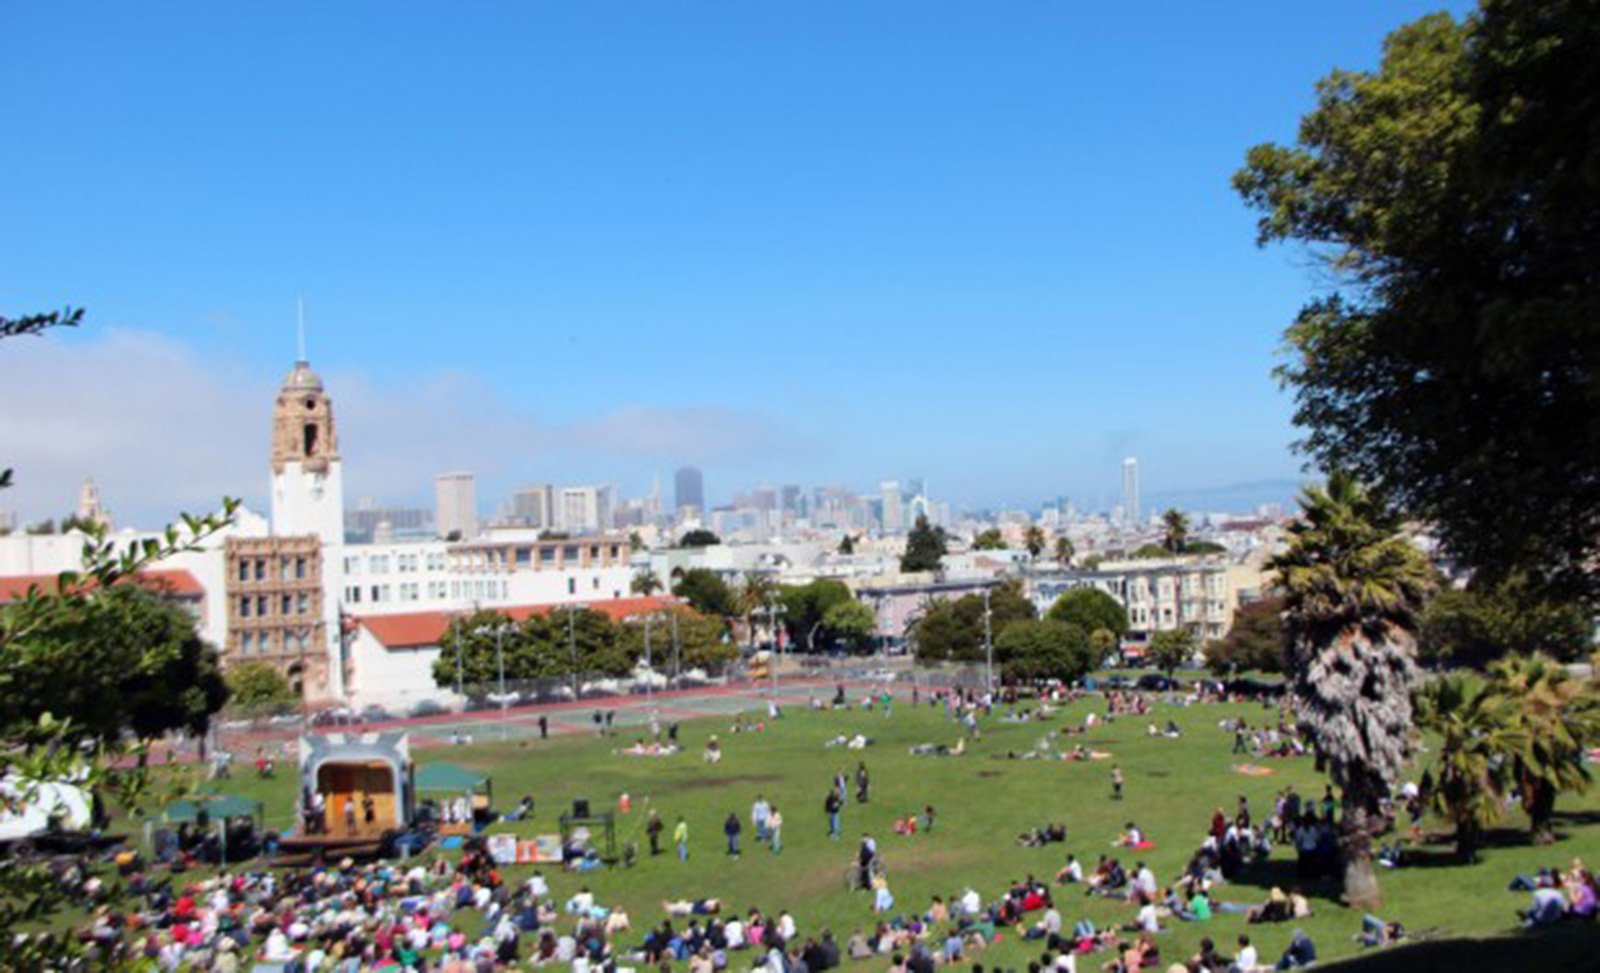 A $100,000 Joyride In Dolores Park